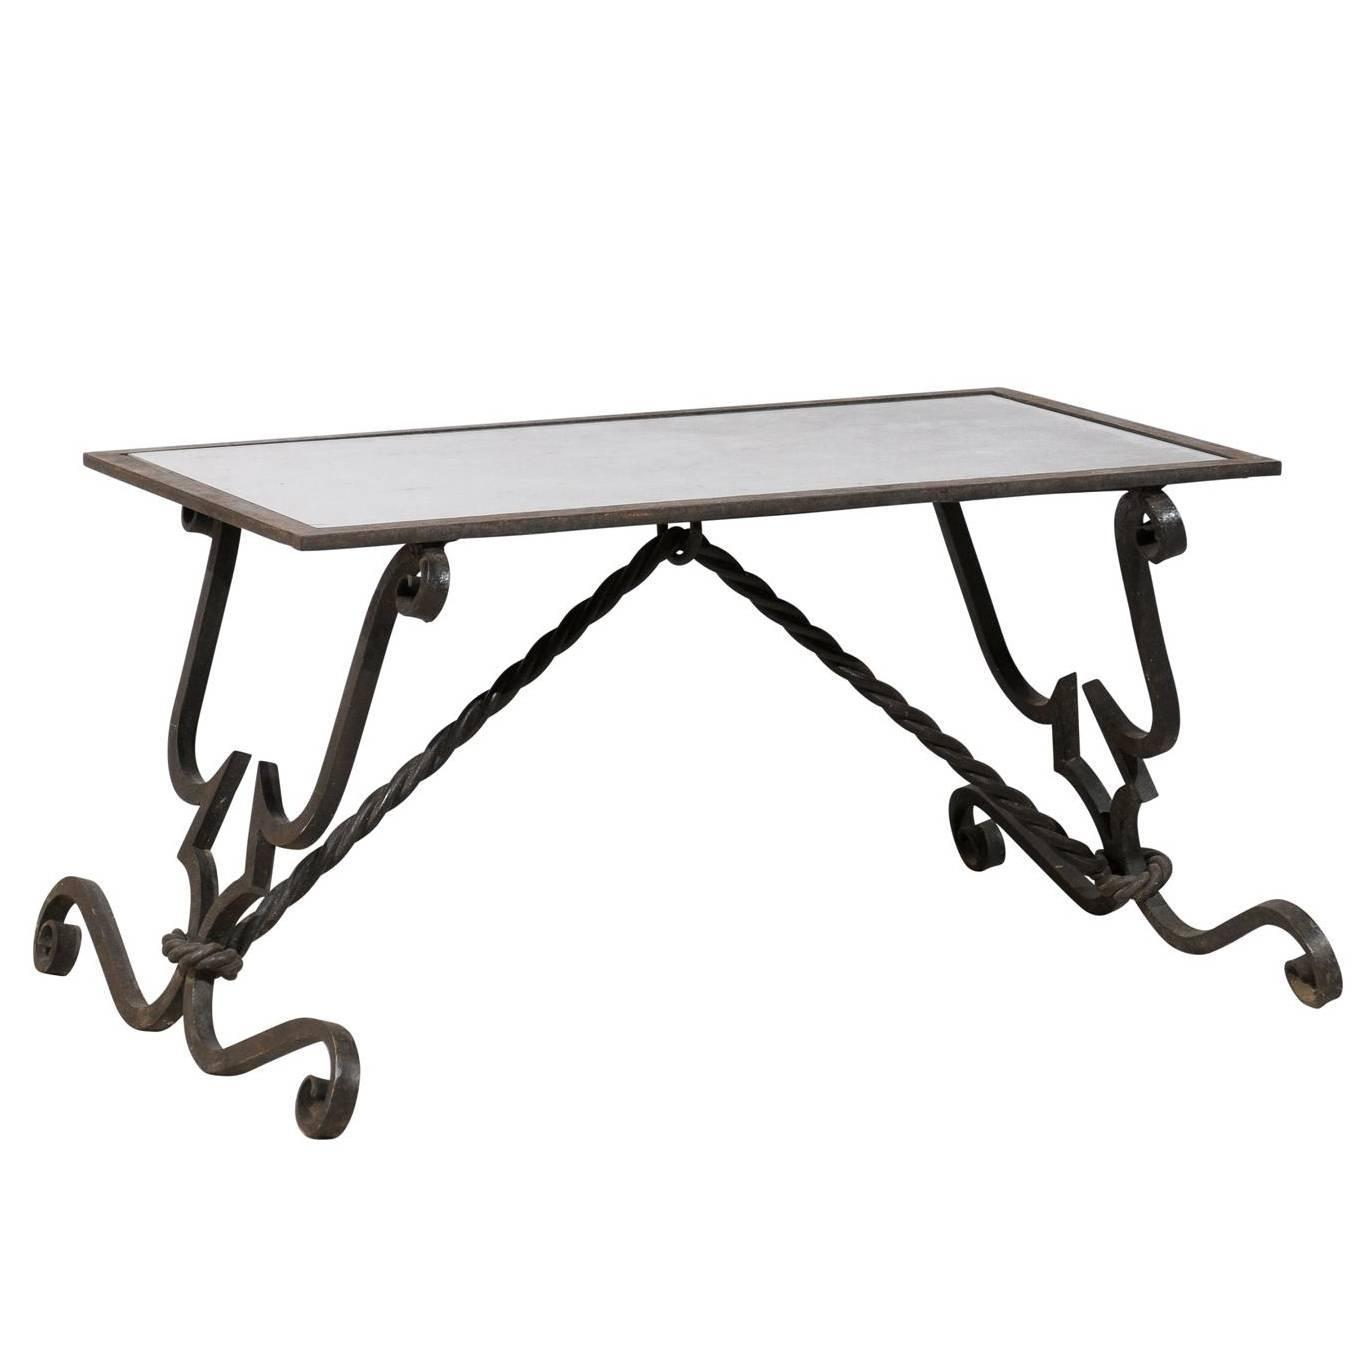 French vintage wrought iron base coffee table for sale at 1stdibs Wrought iron coffee tables